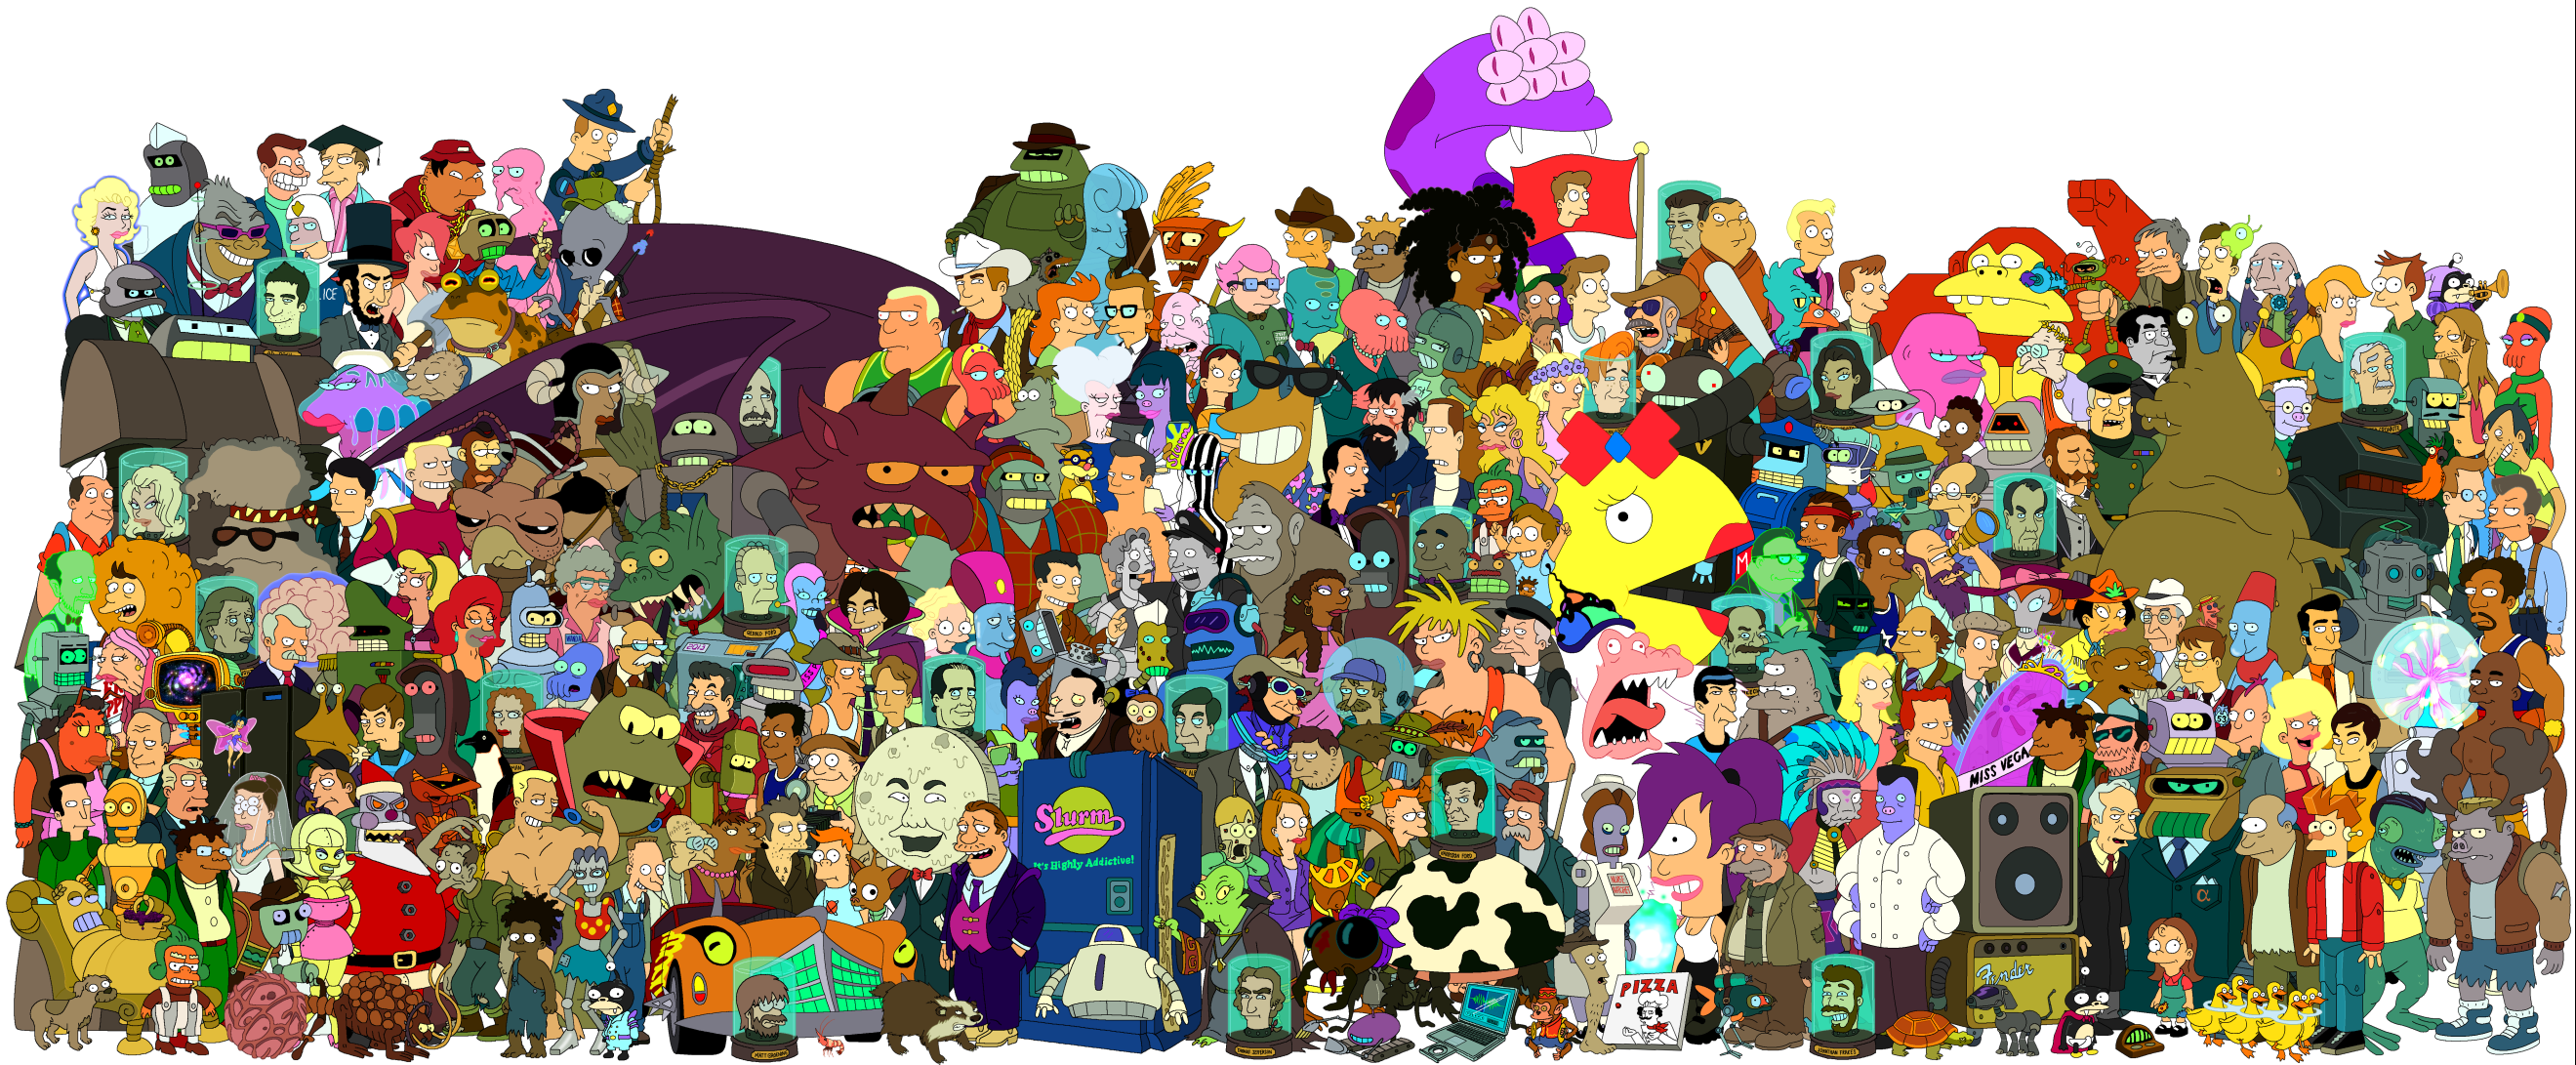 Image futurama personajes 1 png futurama fanon - Female cartoon characters wallpapers ...